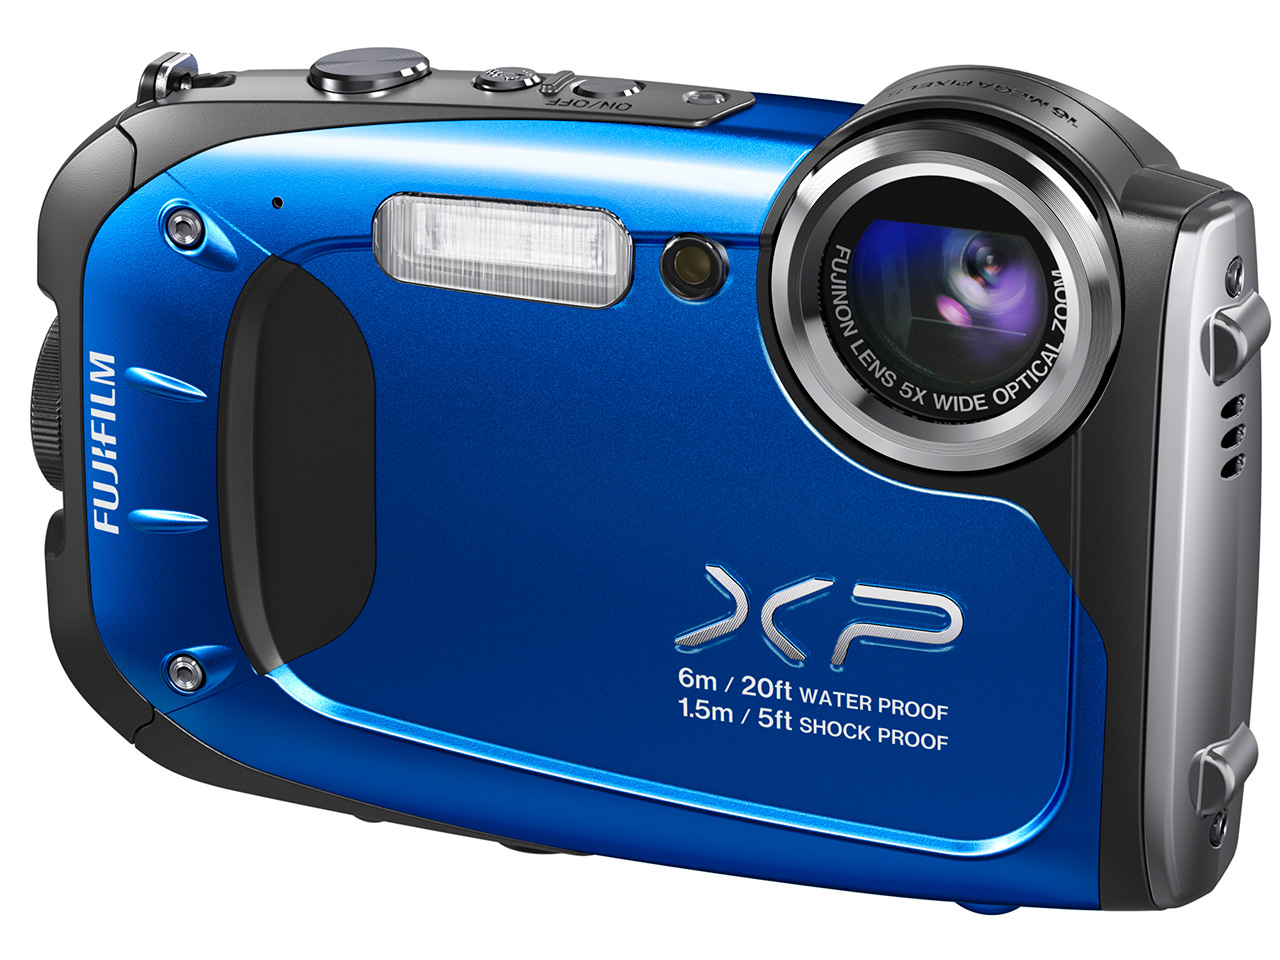 FUJIFILM FinePix XP60 brings style and substance to its rugged outdoor  series